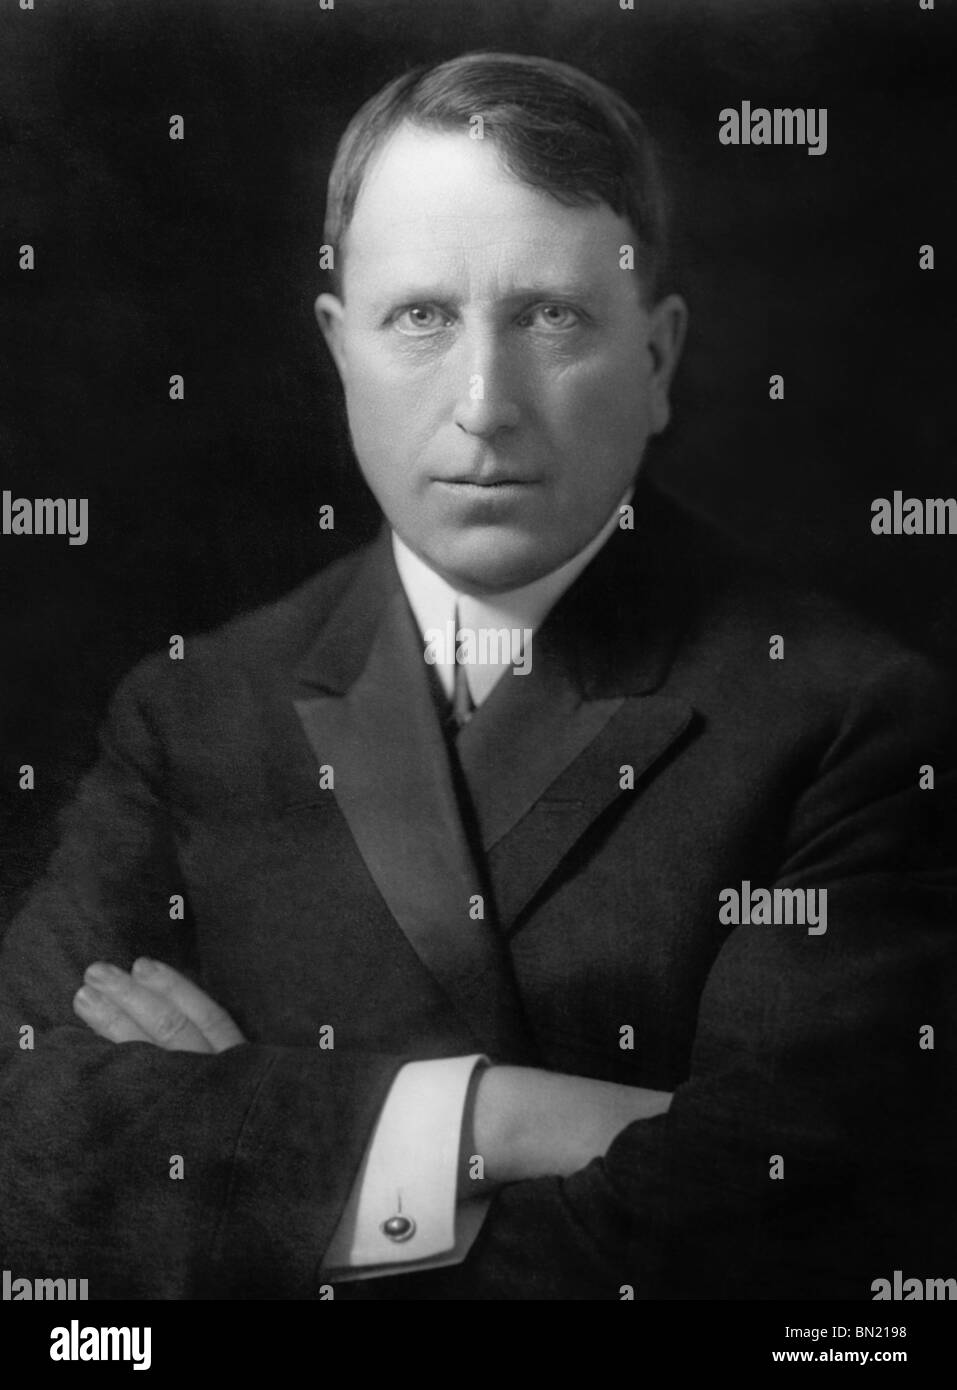 Portrait photo circa 1910 of American newspaper magnate and leading publisher William Randolph Hearst (1863 - 1951). - Stock Image